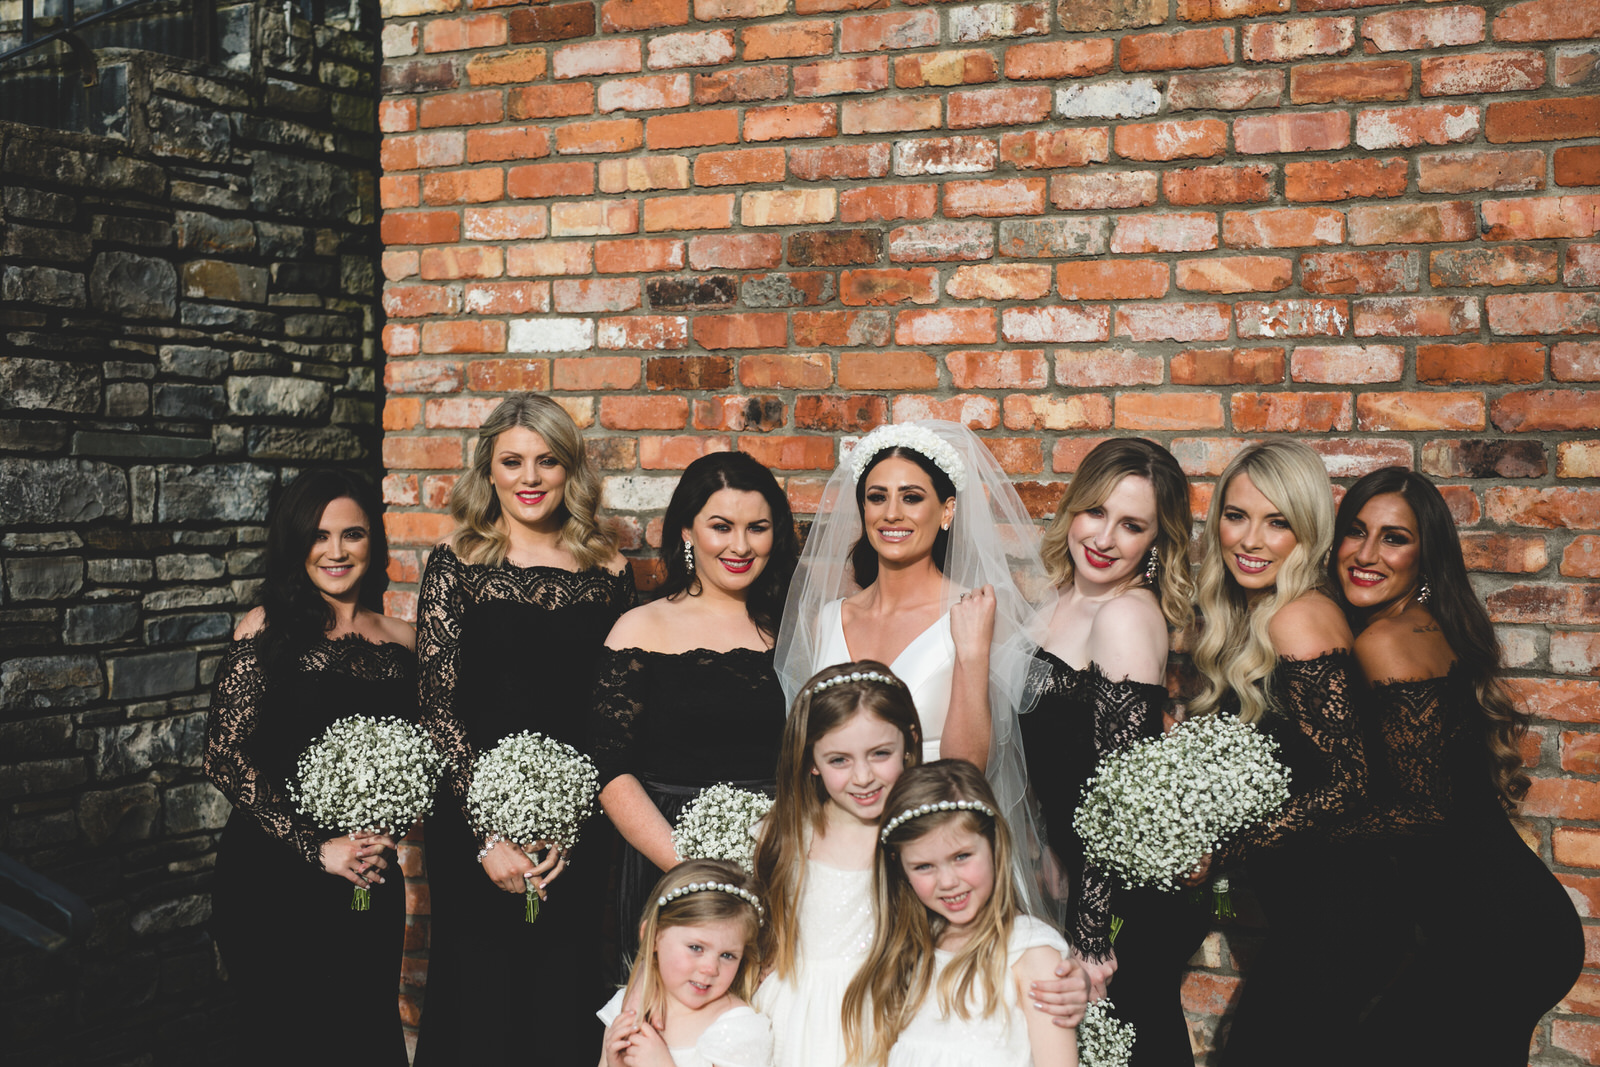 Bridal party group shots at Ballymagarvey Village in Meath